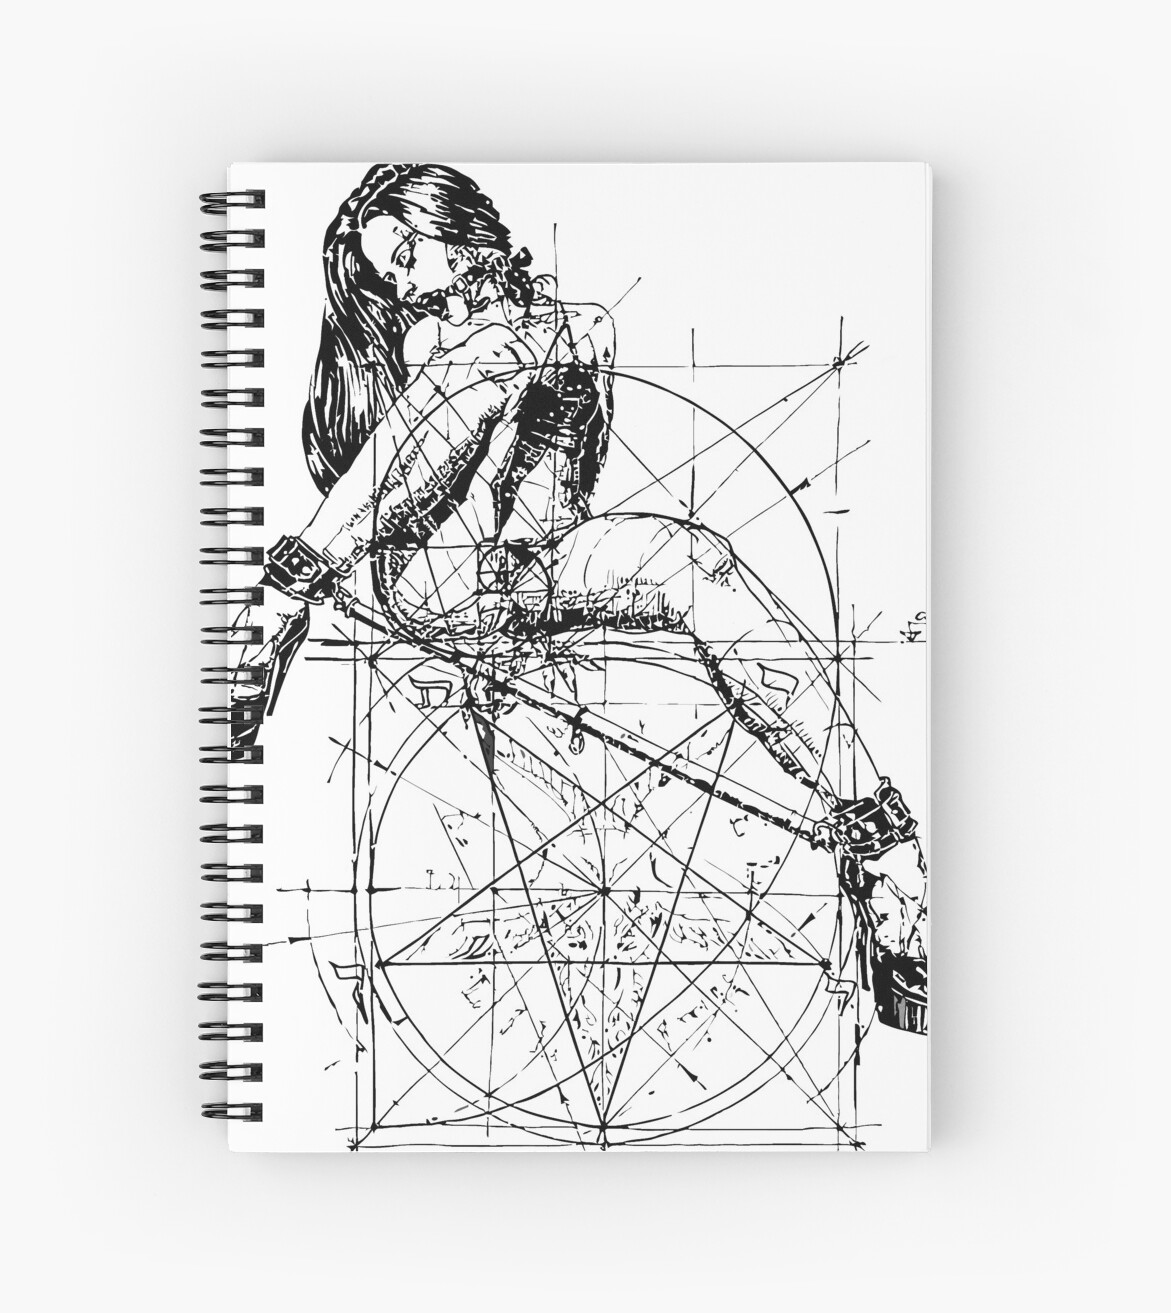 Quot Sad Satan Woman Drawing Quot Spiral Notebooks By Nido88